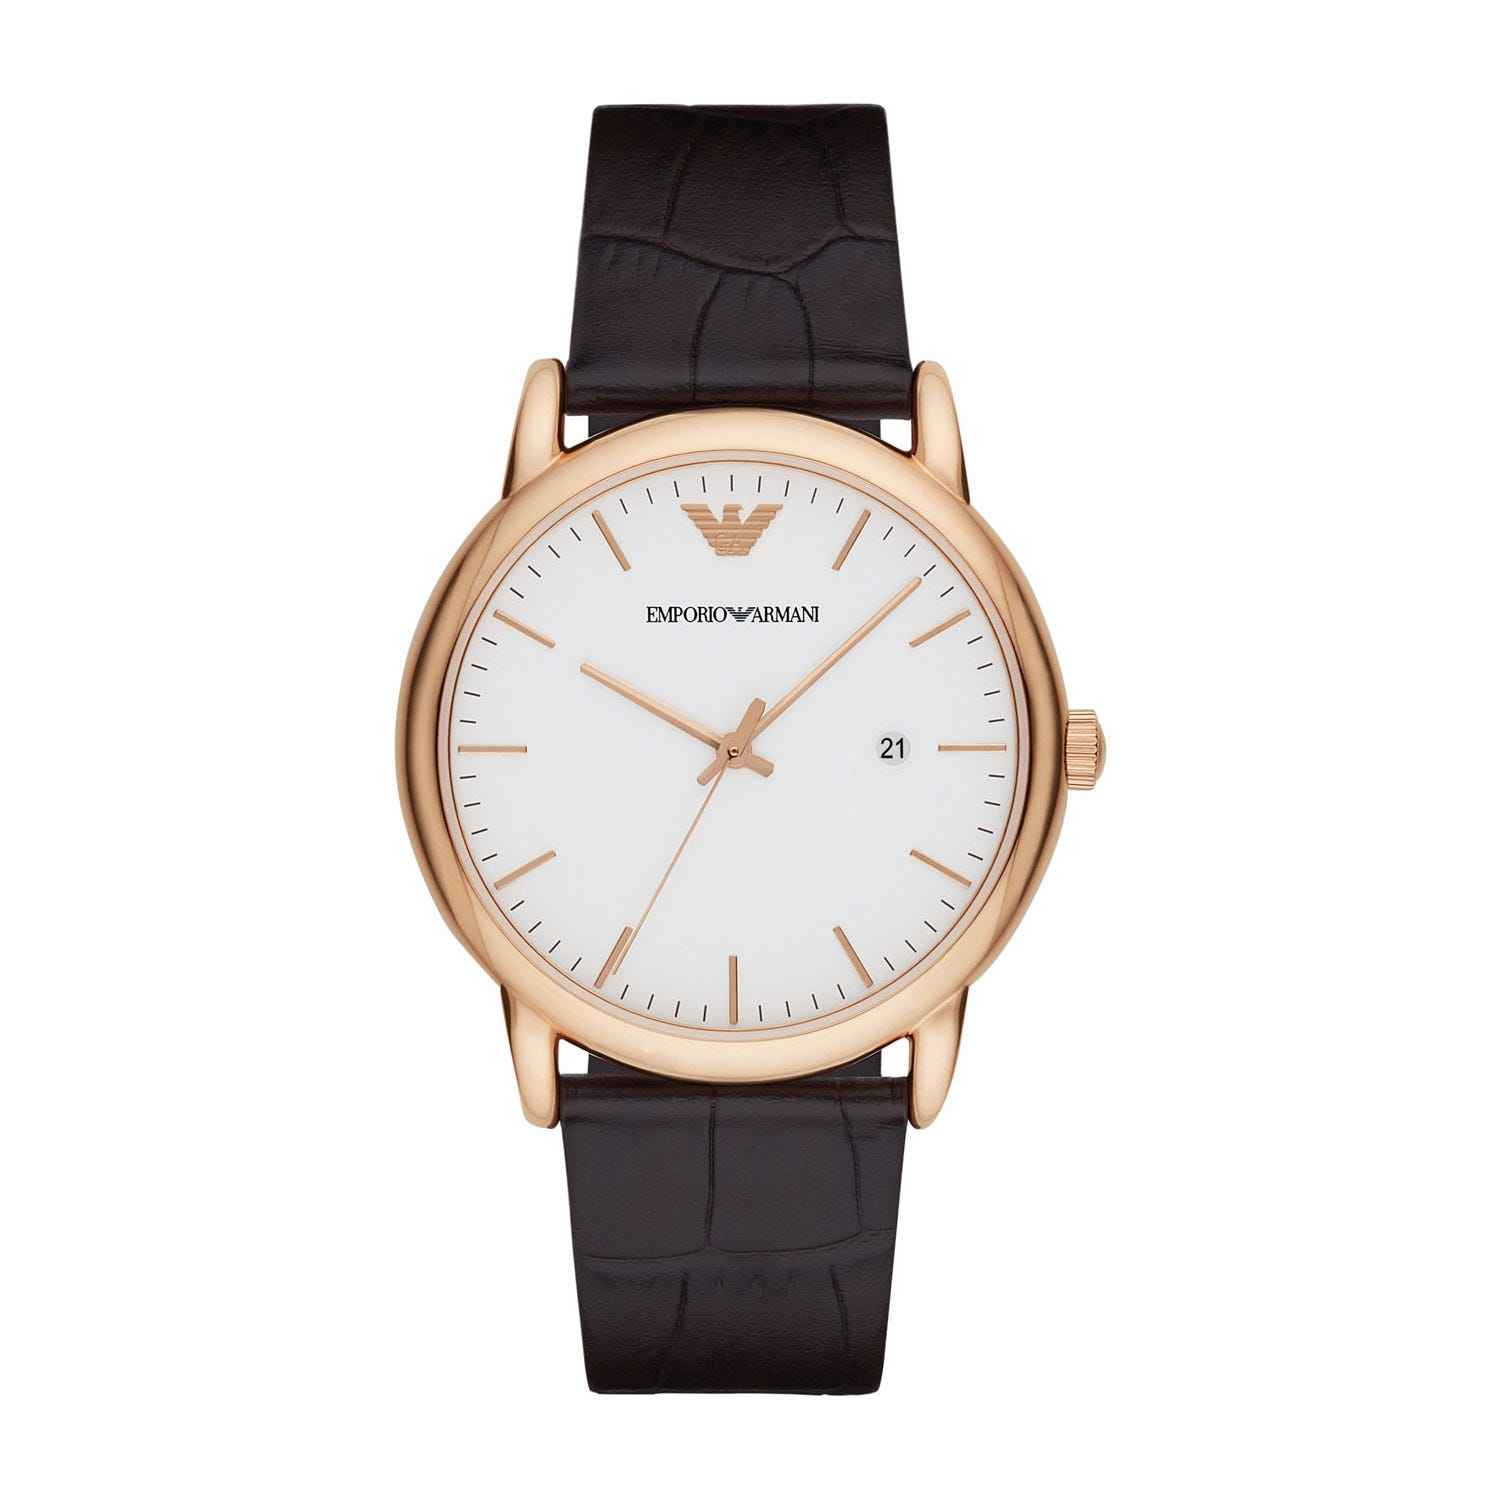 Emporio Armani Men's White Dial Rose Gold Brown Leather Strap Watch